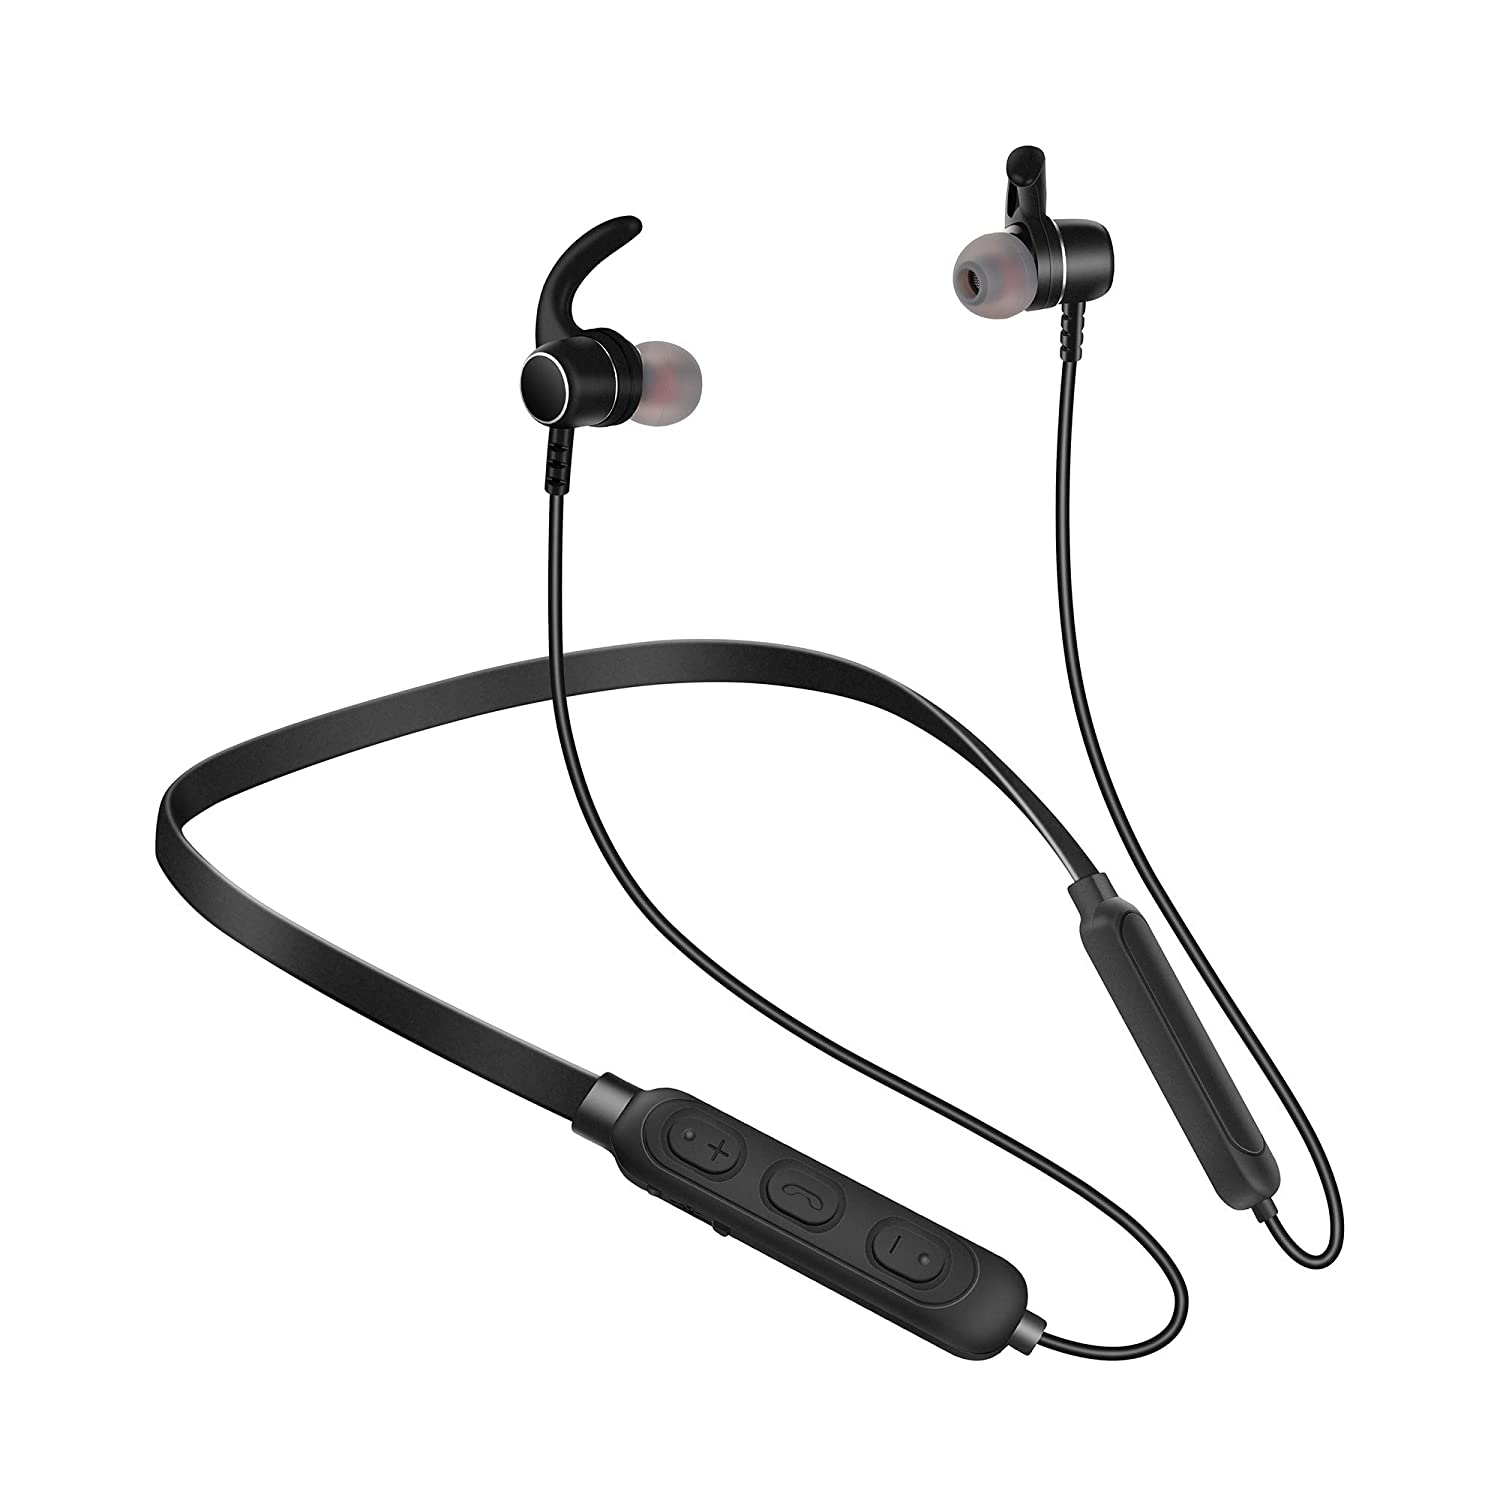 Bluetooth Headphones, Noise Cancelling Headphones with Microphone - Magnetic HD Stereo Wireless Headphones, IPX5 8 Hour Battery Waterproof Bluetooth Headset for Running Workout & Gym